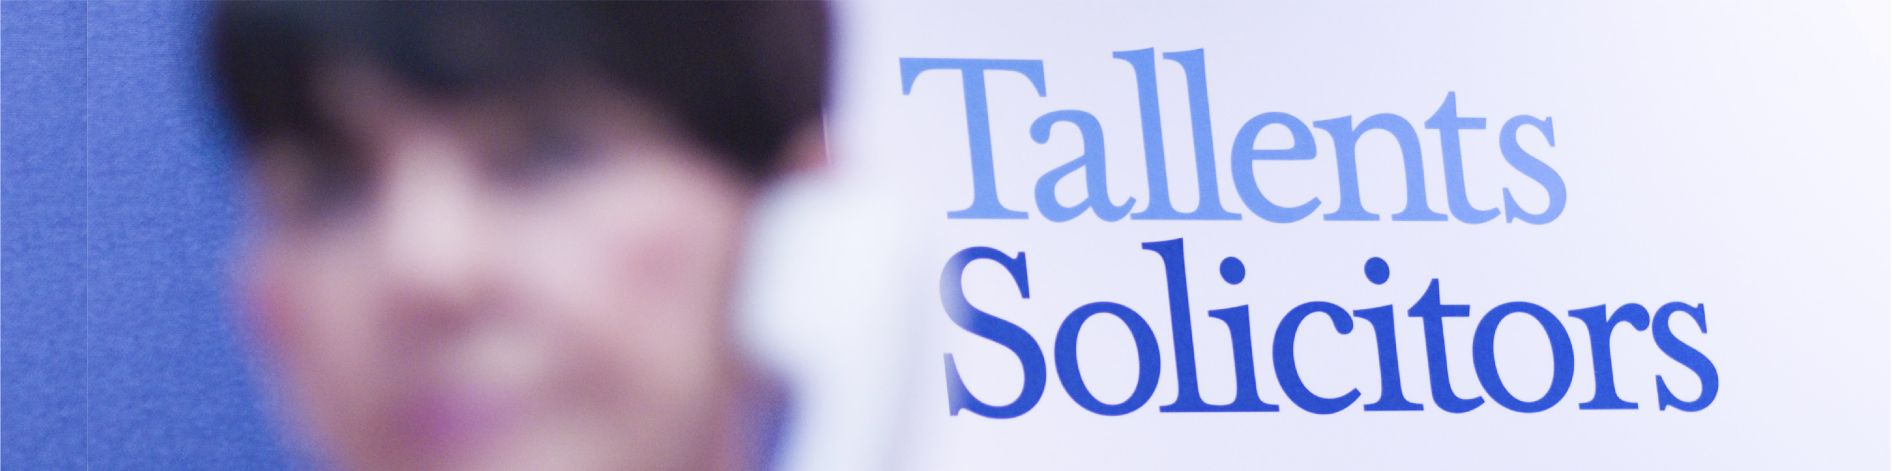 Tallents Solicitors offer legal services to clients across Nottinghamshire and Lincolnshire